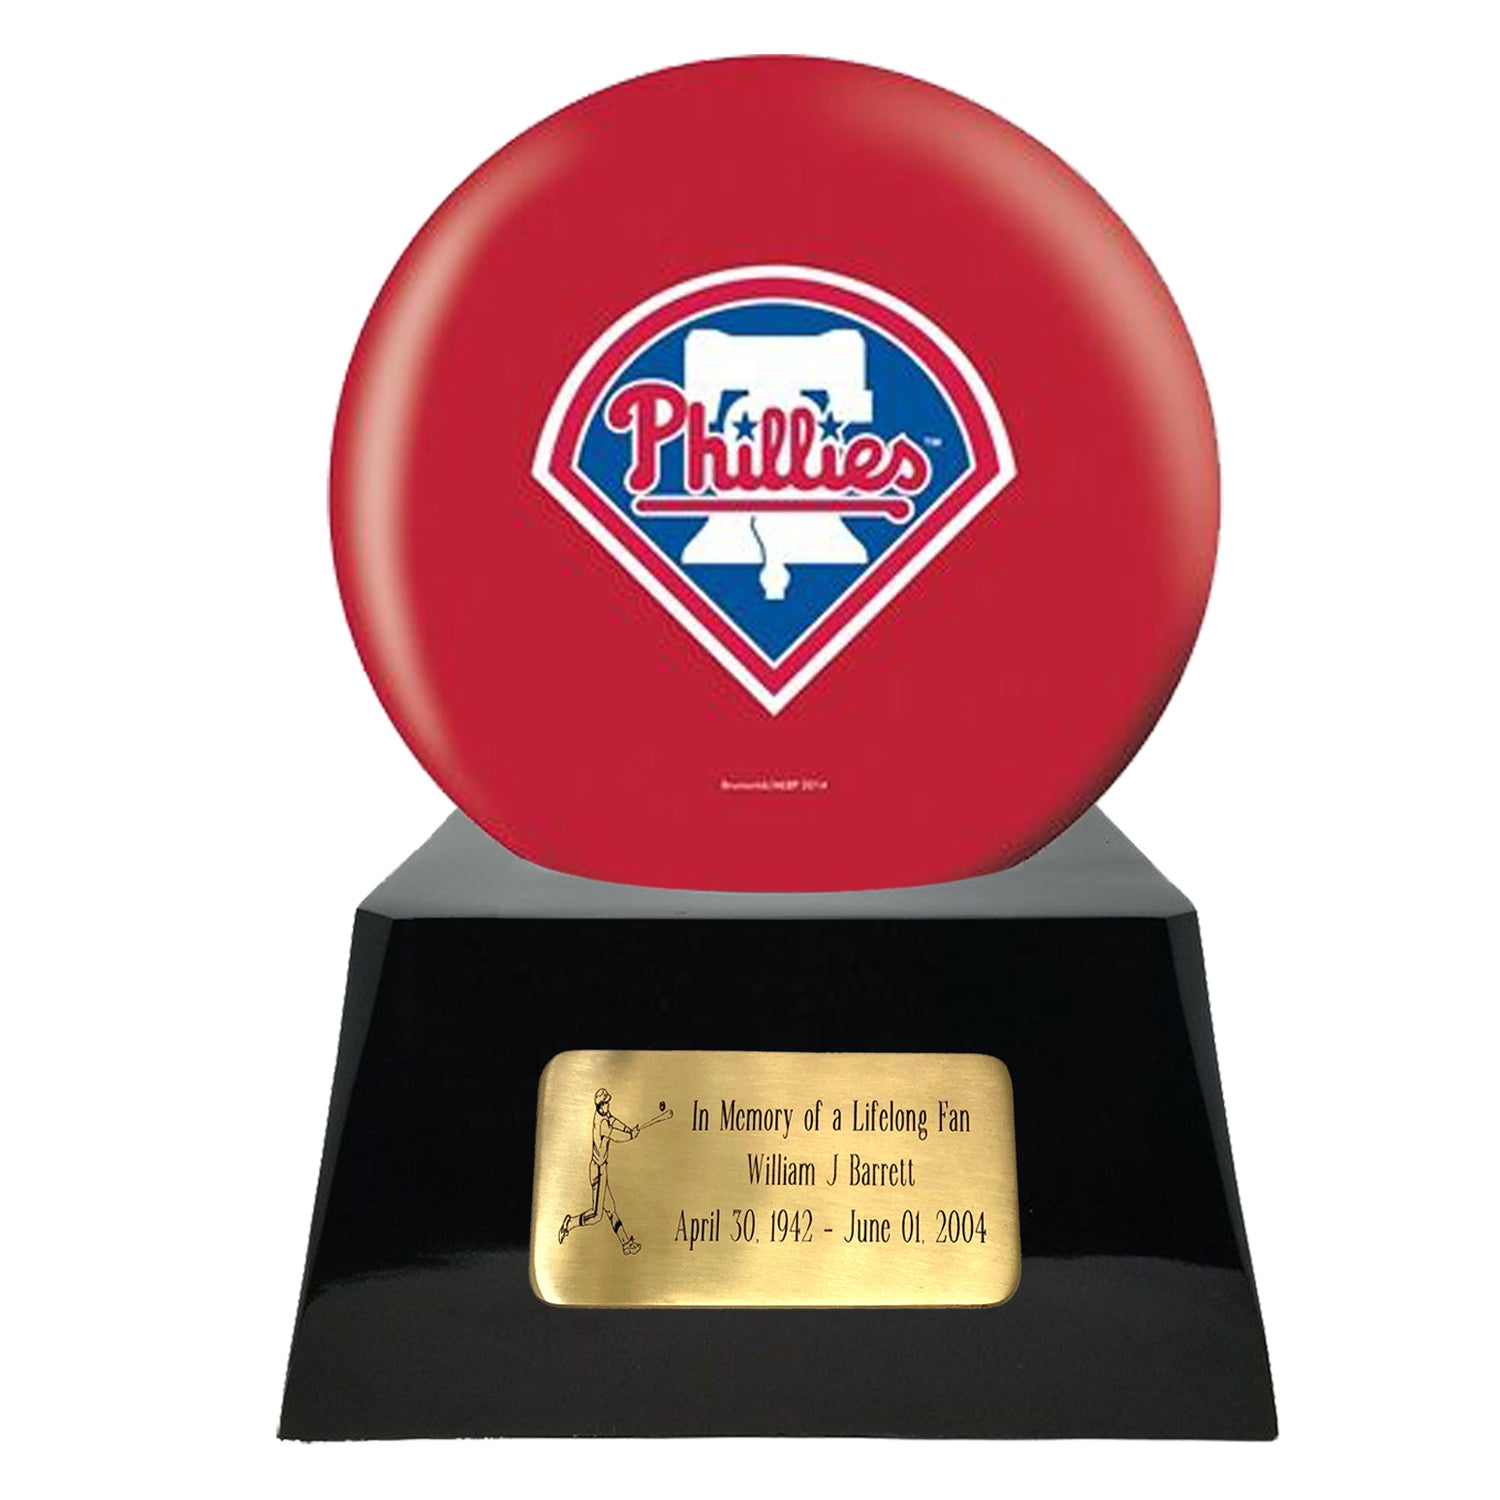 Baseball Cremation Urn with Optional Philadelphia Phillies Ball Decor and Custom Metal Plaque, Sports Urn - Divinity Urns